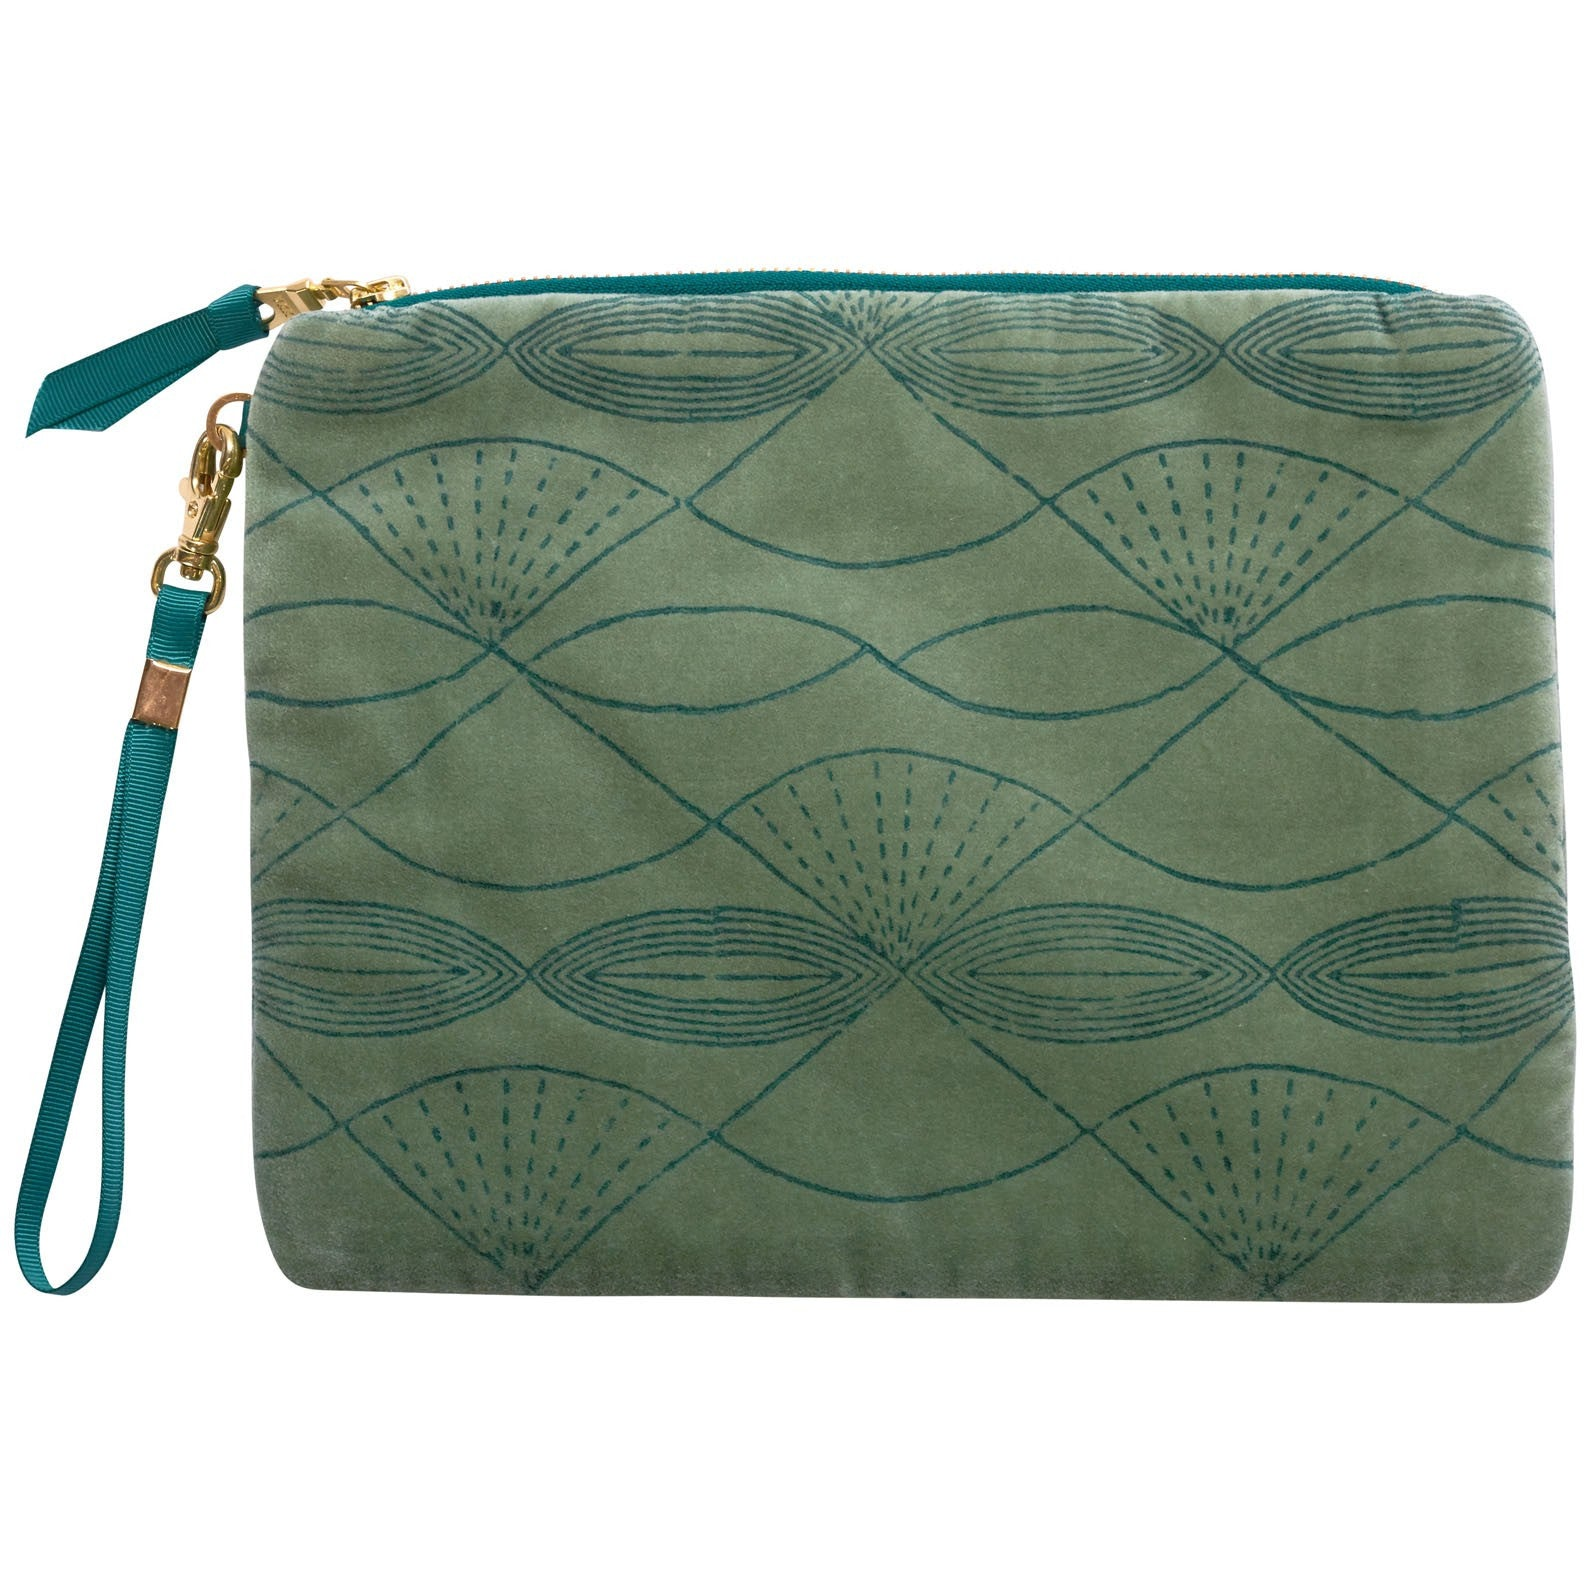 RIVIERA SOLITAIRE PURSE